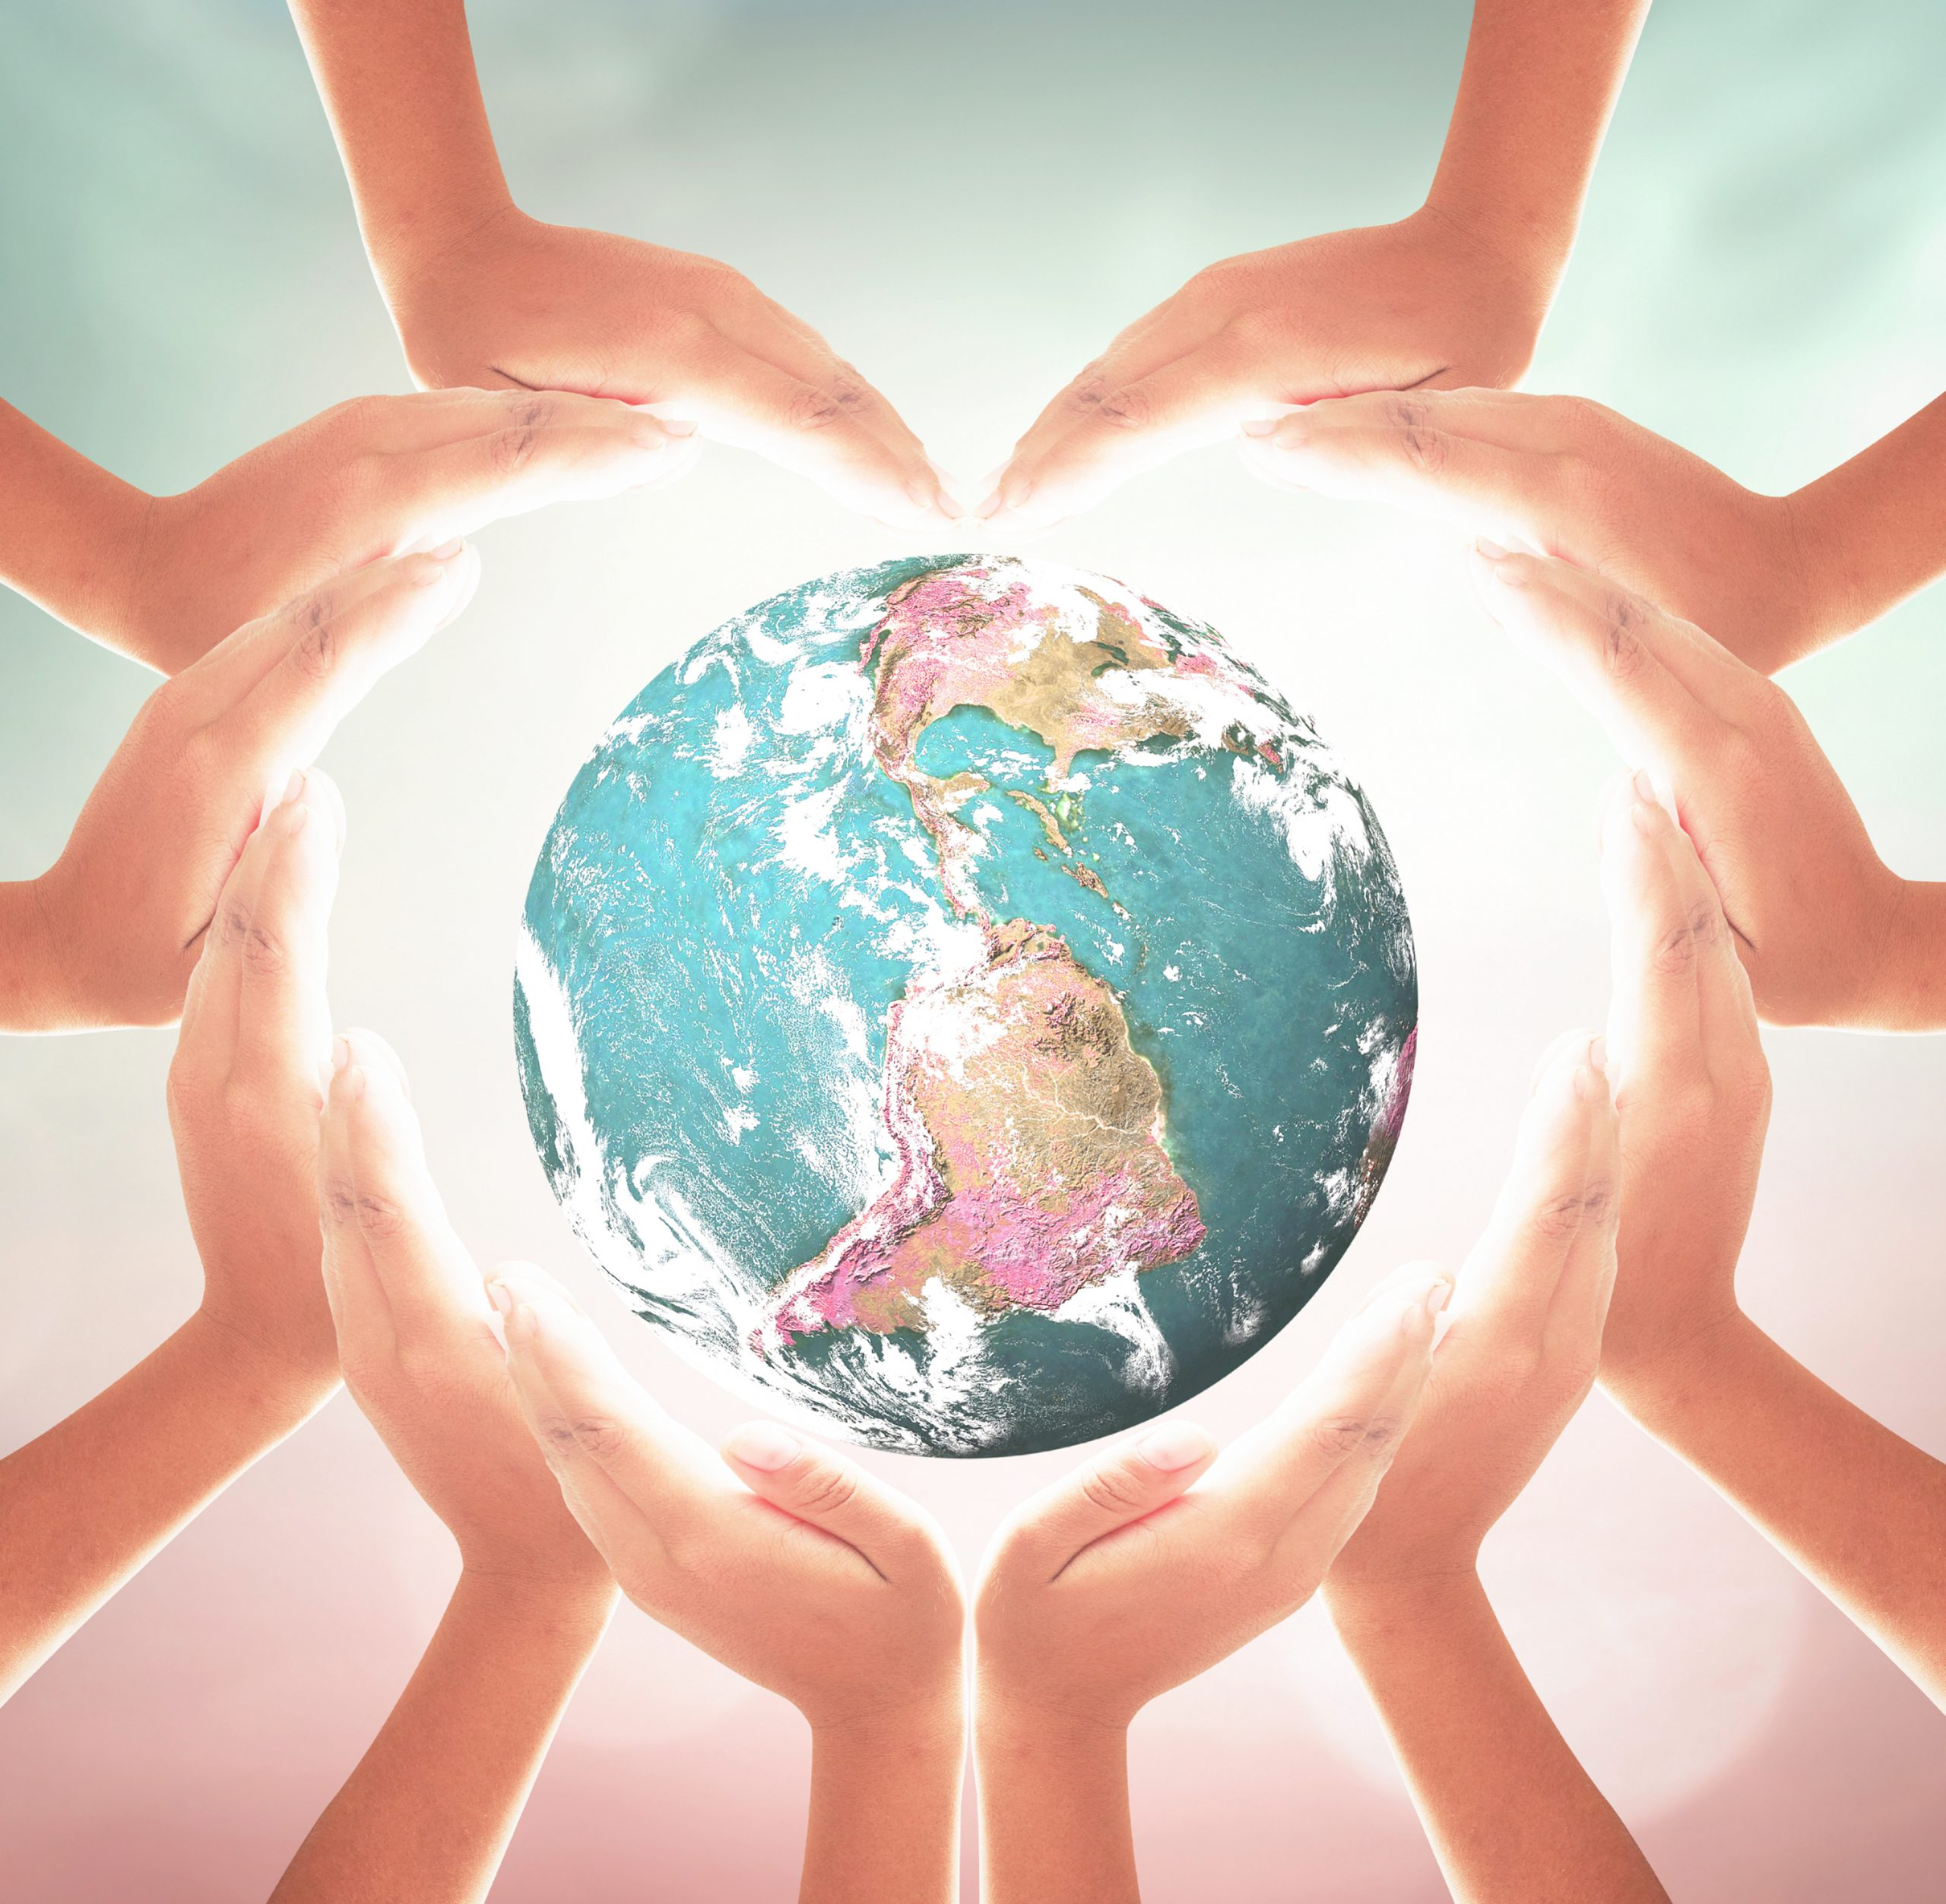 Earth and Heart of hands